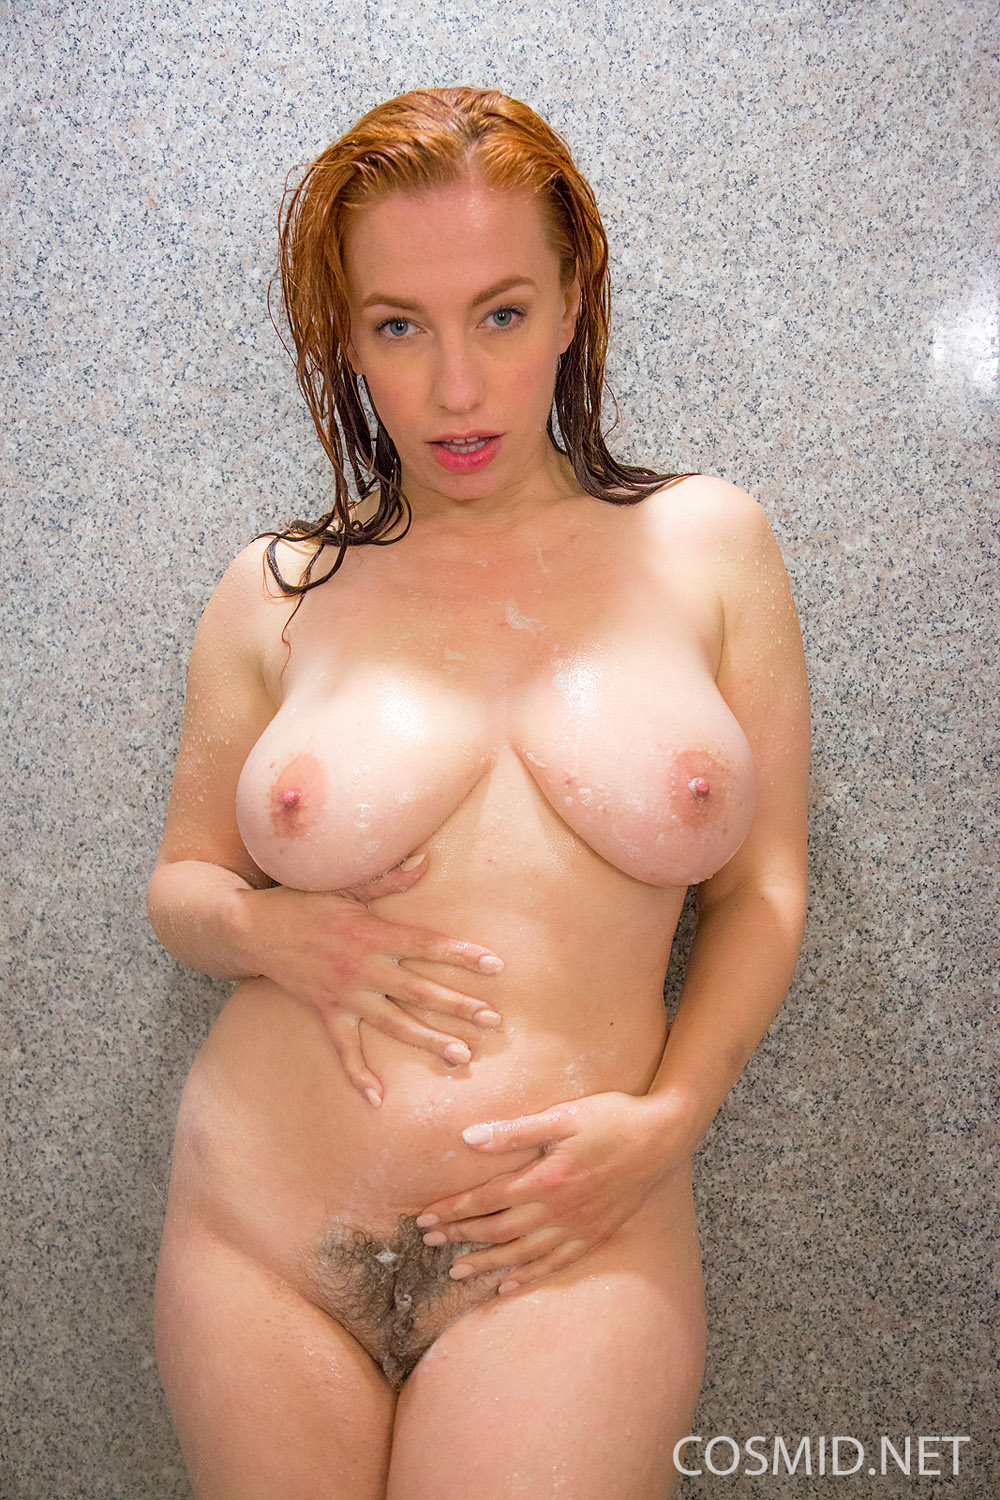 Busty redhead shows us her big naturals and hairy pussy 9